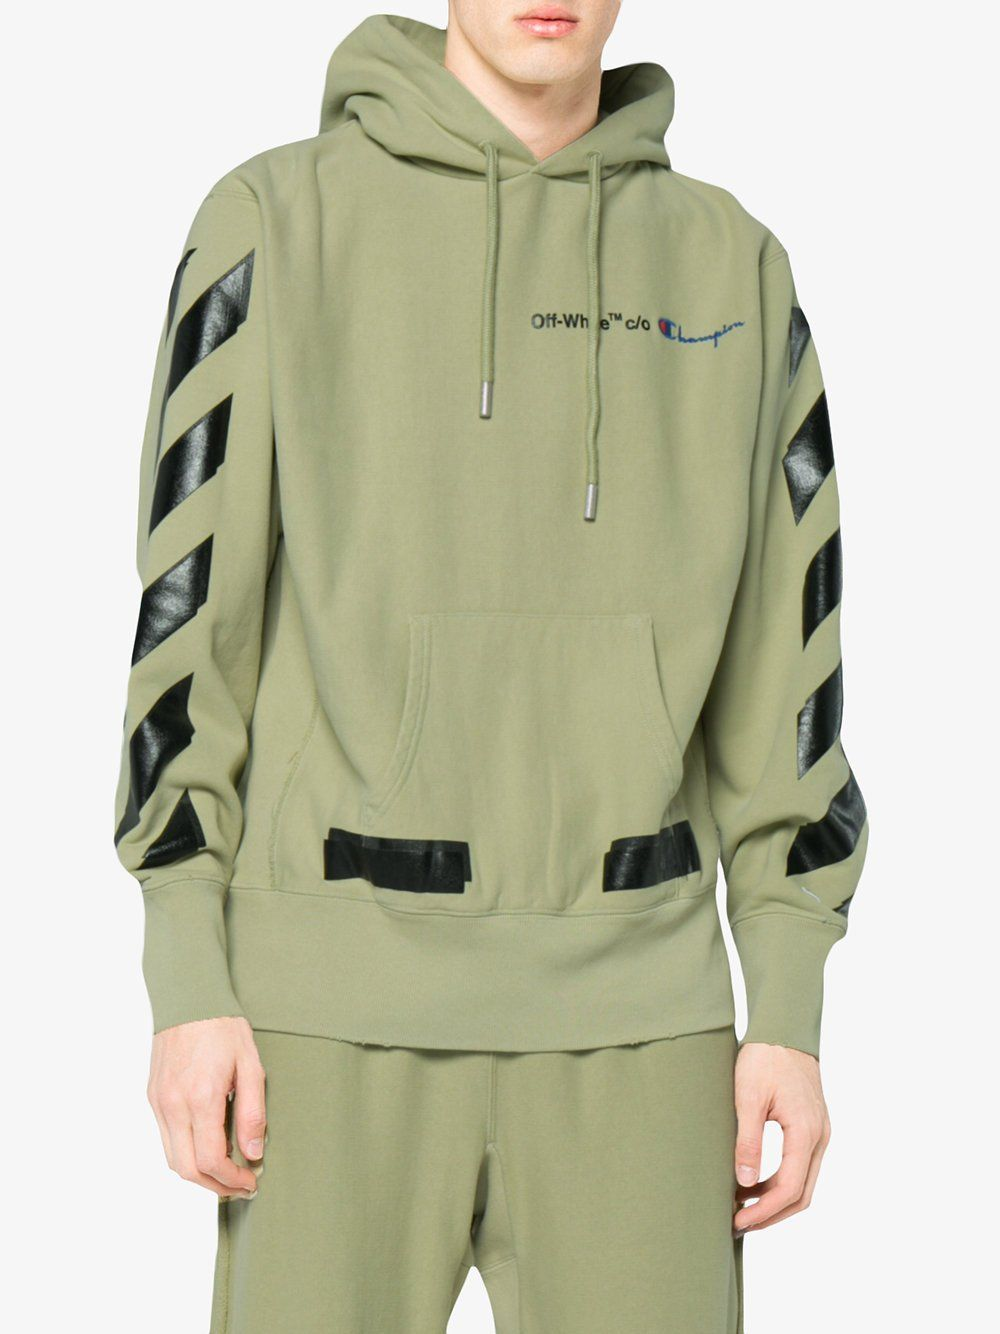 Camo Green Champion Hoodie By Off White Green Champion Hoodie Hoodies Hoodie Design [ 1334 x 1000 Pixel ]